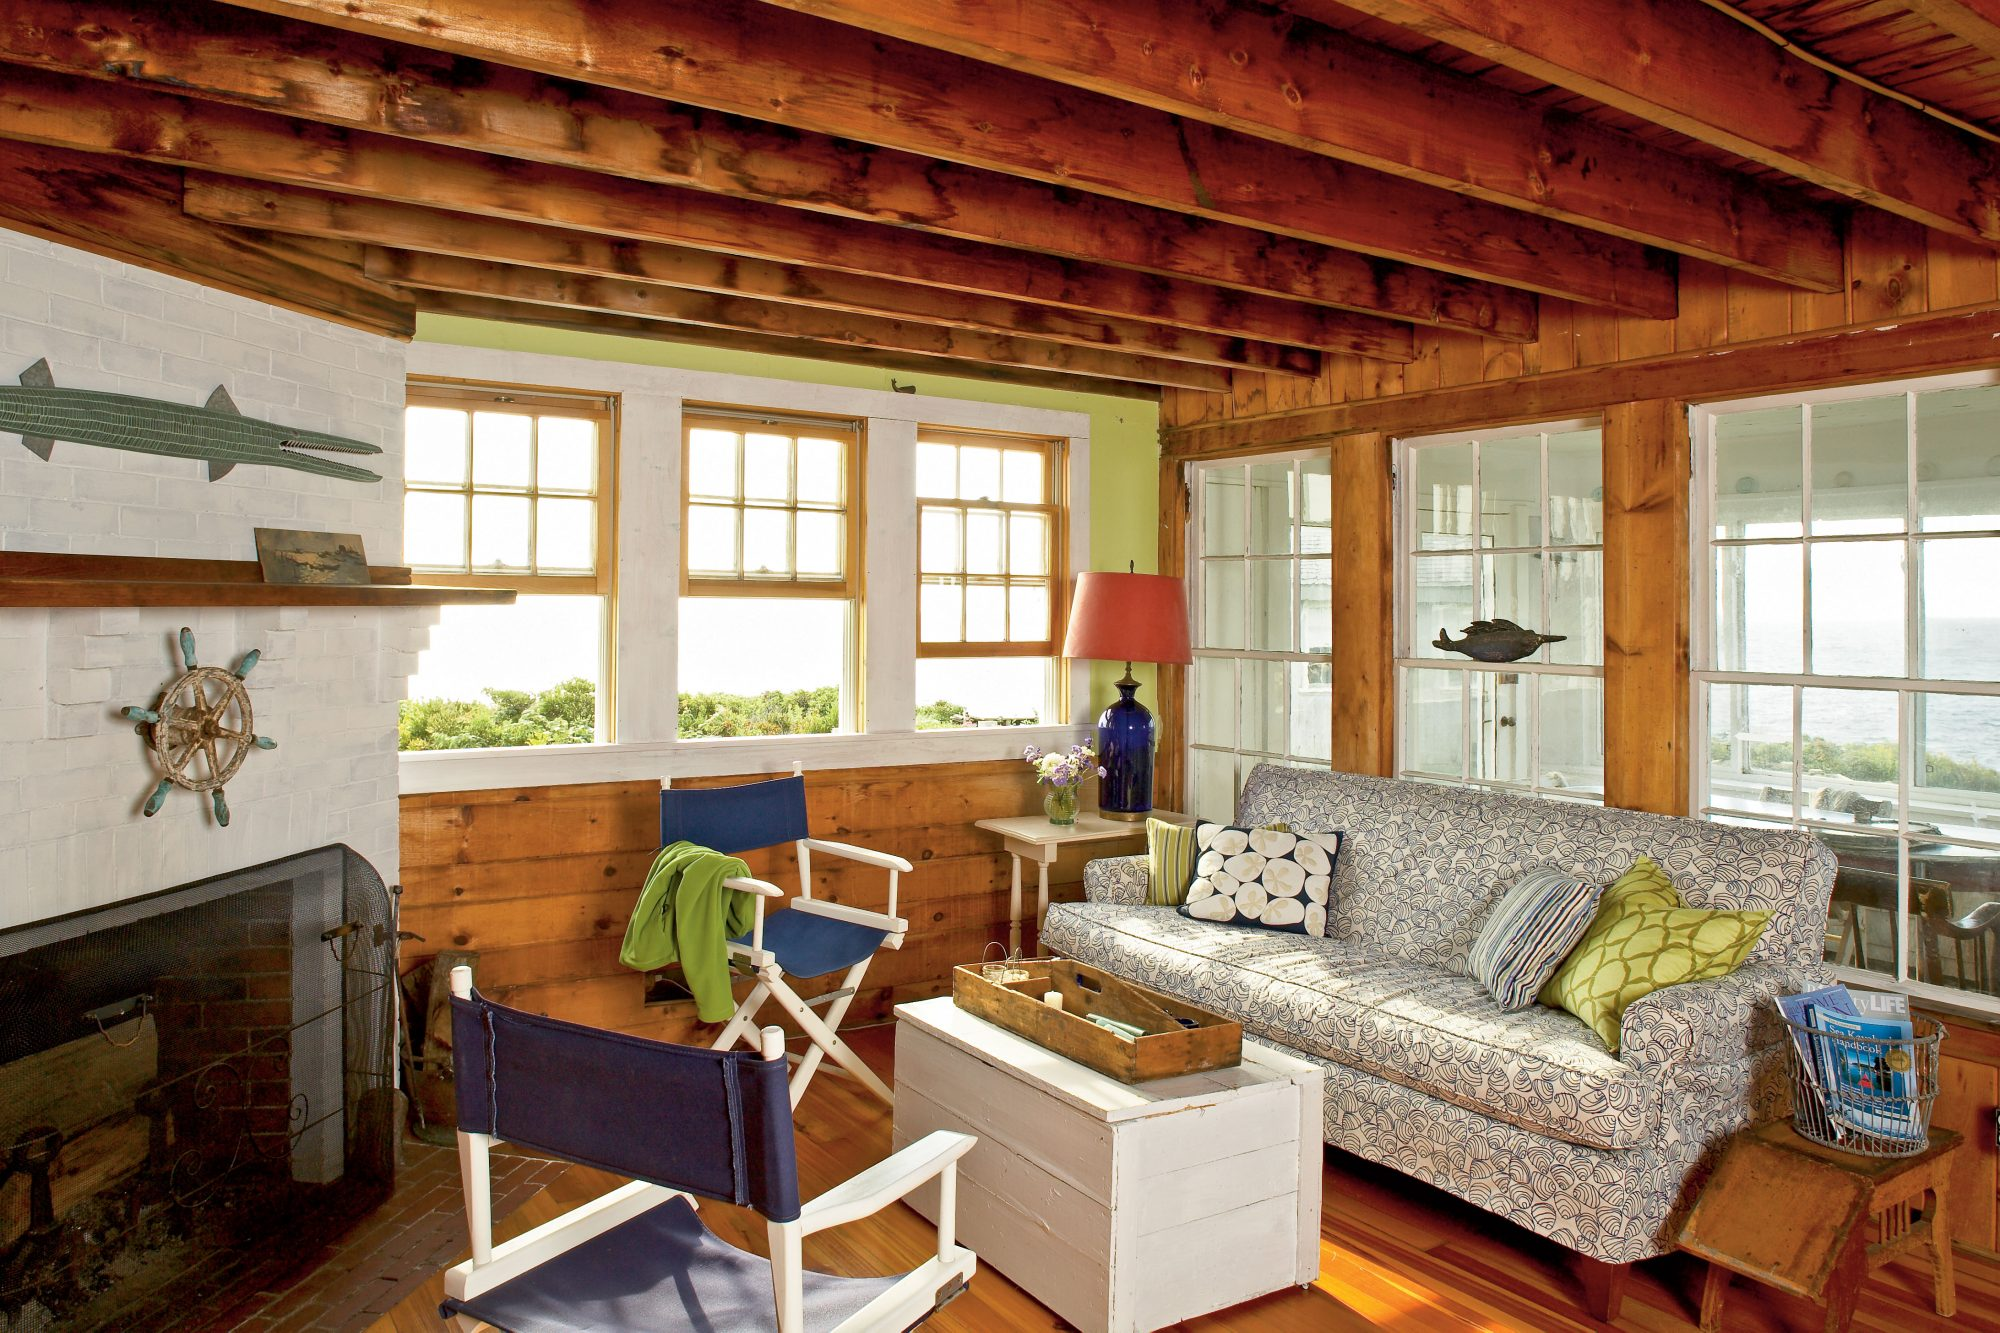 A hodgepodge of 20th century furniture came with the house, so the homeowners spent a lot of time rearranging and incorporating some of their own pieces while still preserving the Old Maine feel.